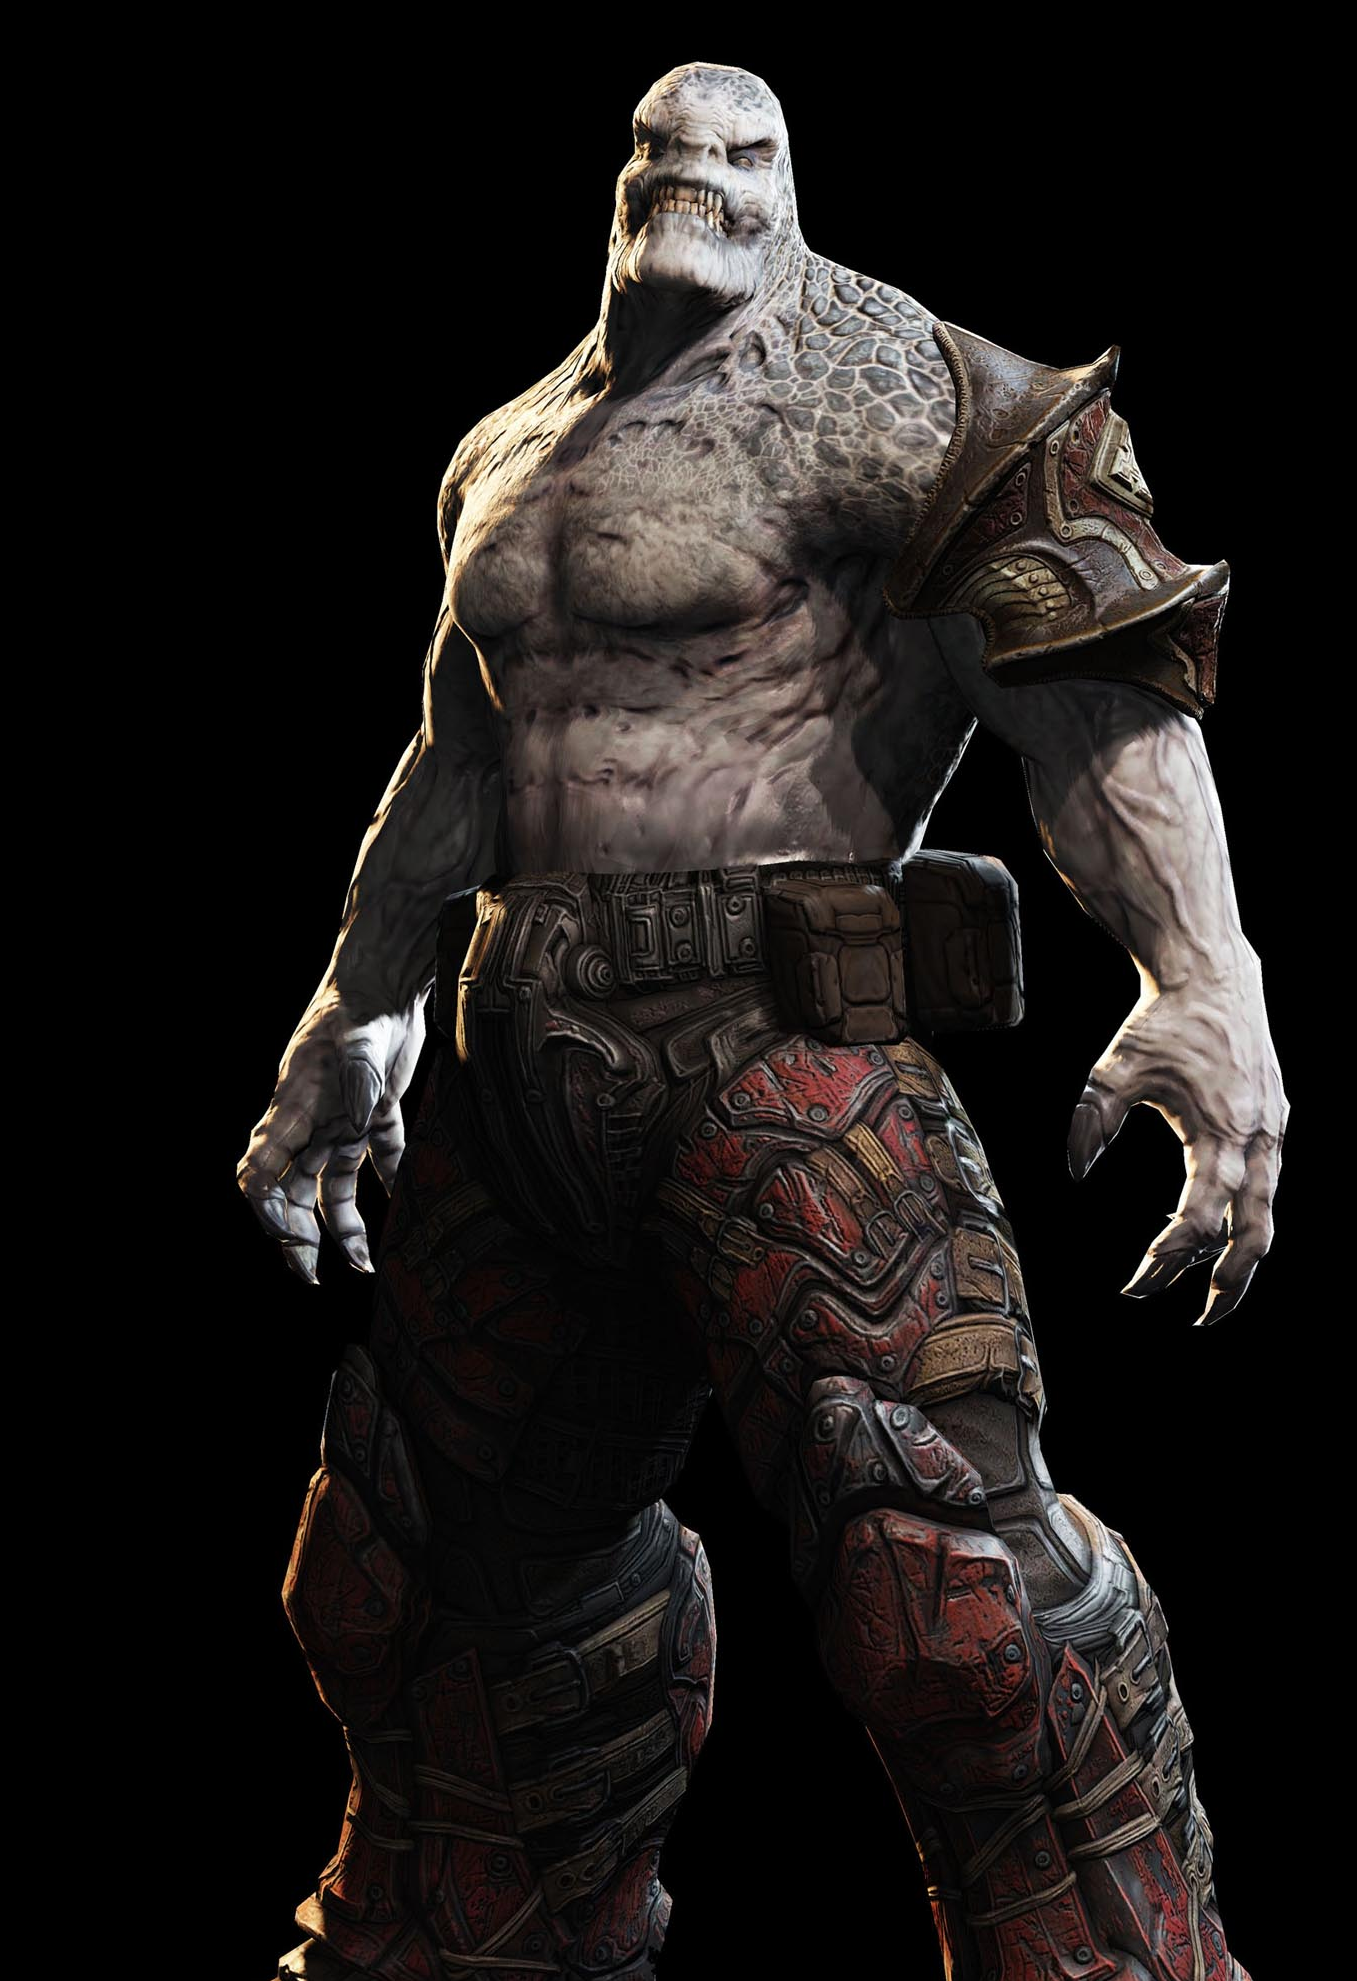 locust drone with Gow Judgment Que Regresen Los Derribos Y Los Locust on Mejores Juegos Xbox 360 104684 furthermore Gears Of War Ultimate Edition Pre Order Characters Exclusives together with Robots moreover Skorge  Gears of War additionally Minecraft Xbla Skin Pack 1 Details.